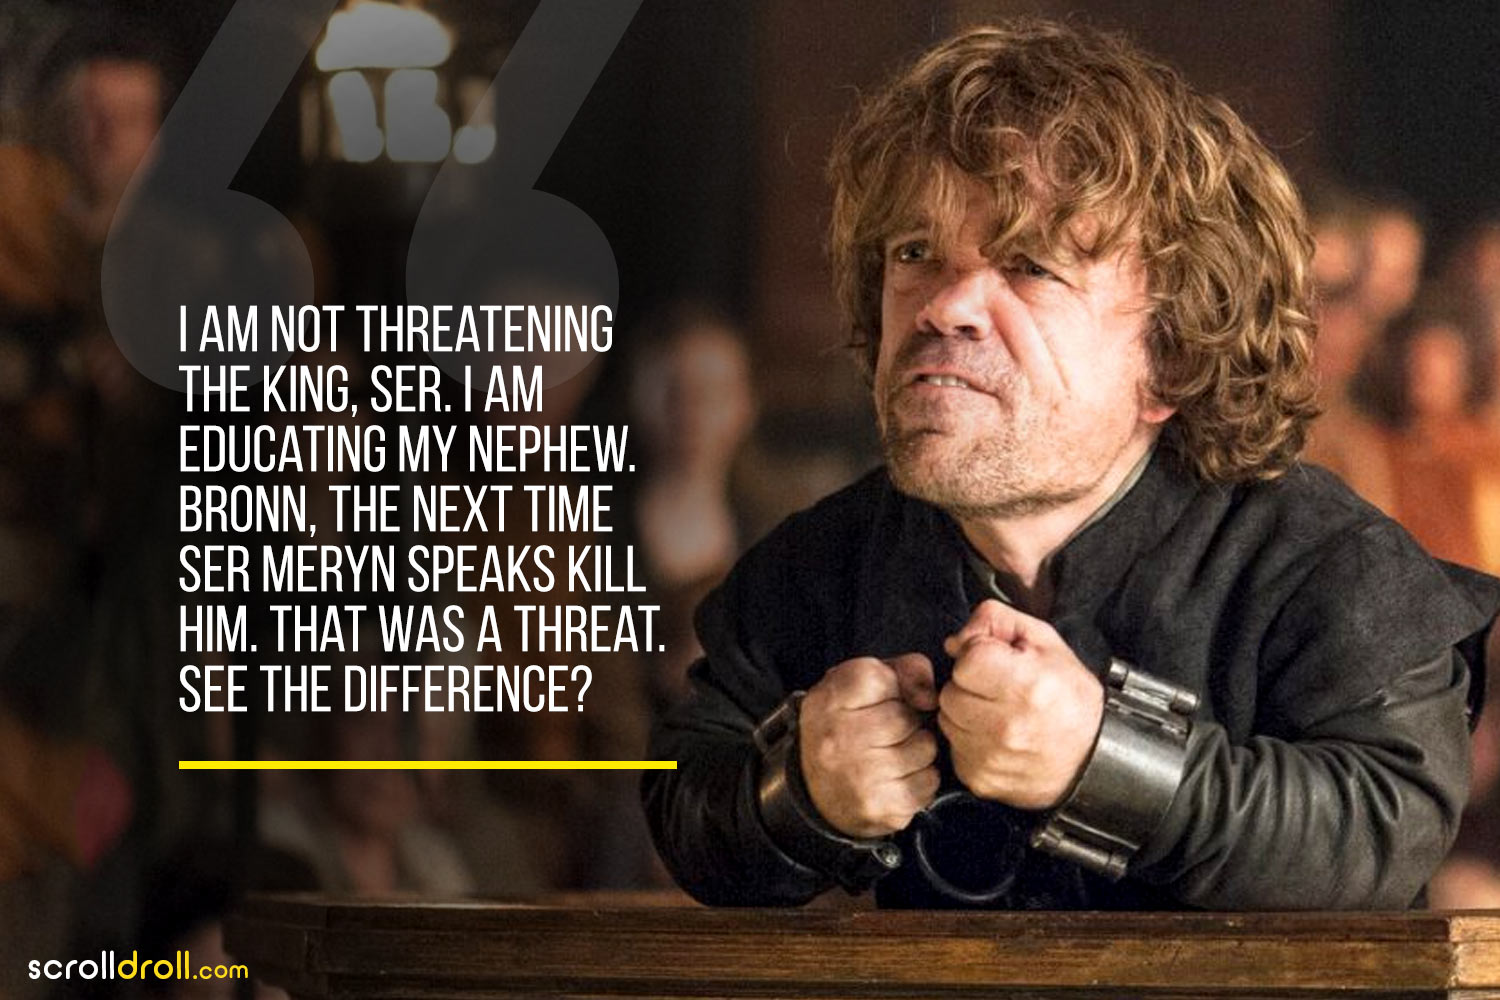 Tyrion-I am not Threatning the King,SER< i am educating my nephew bronn, the next time ser meryn speaks kill him. that was a threat. see the difference?